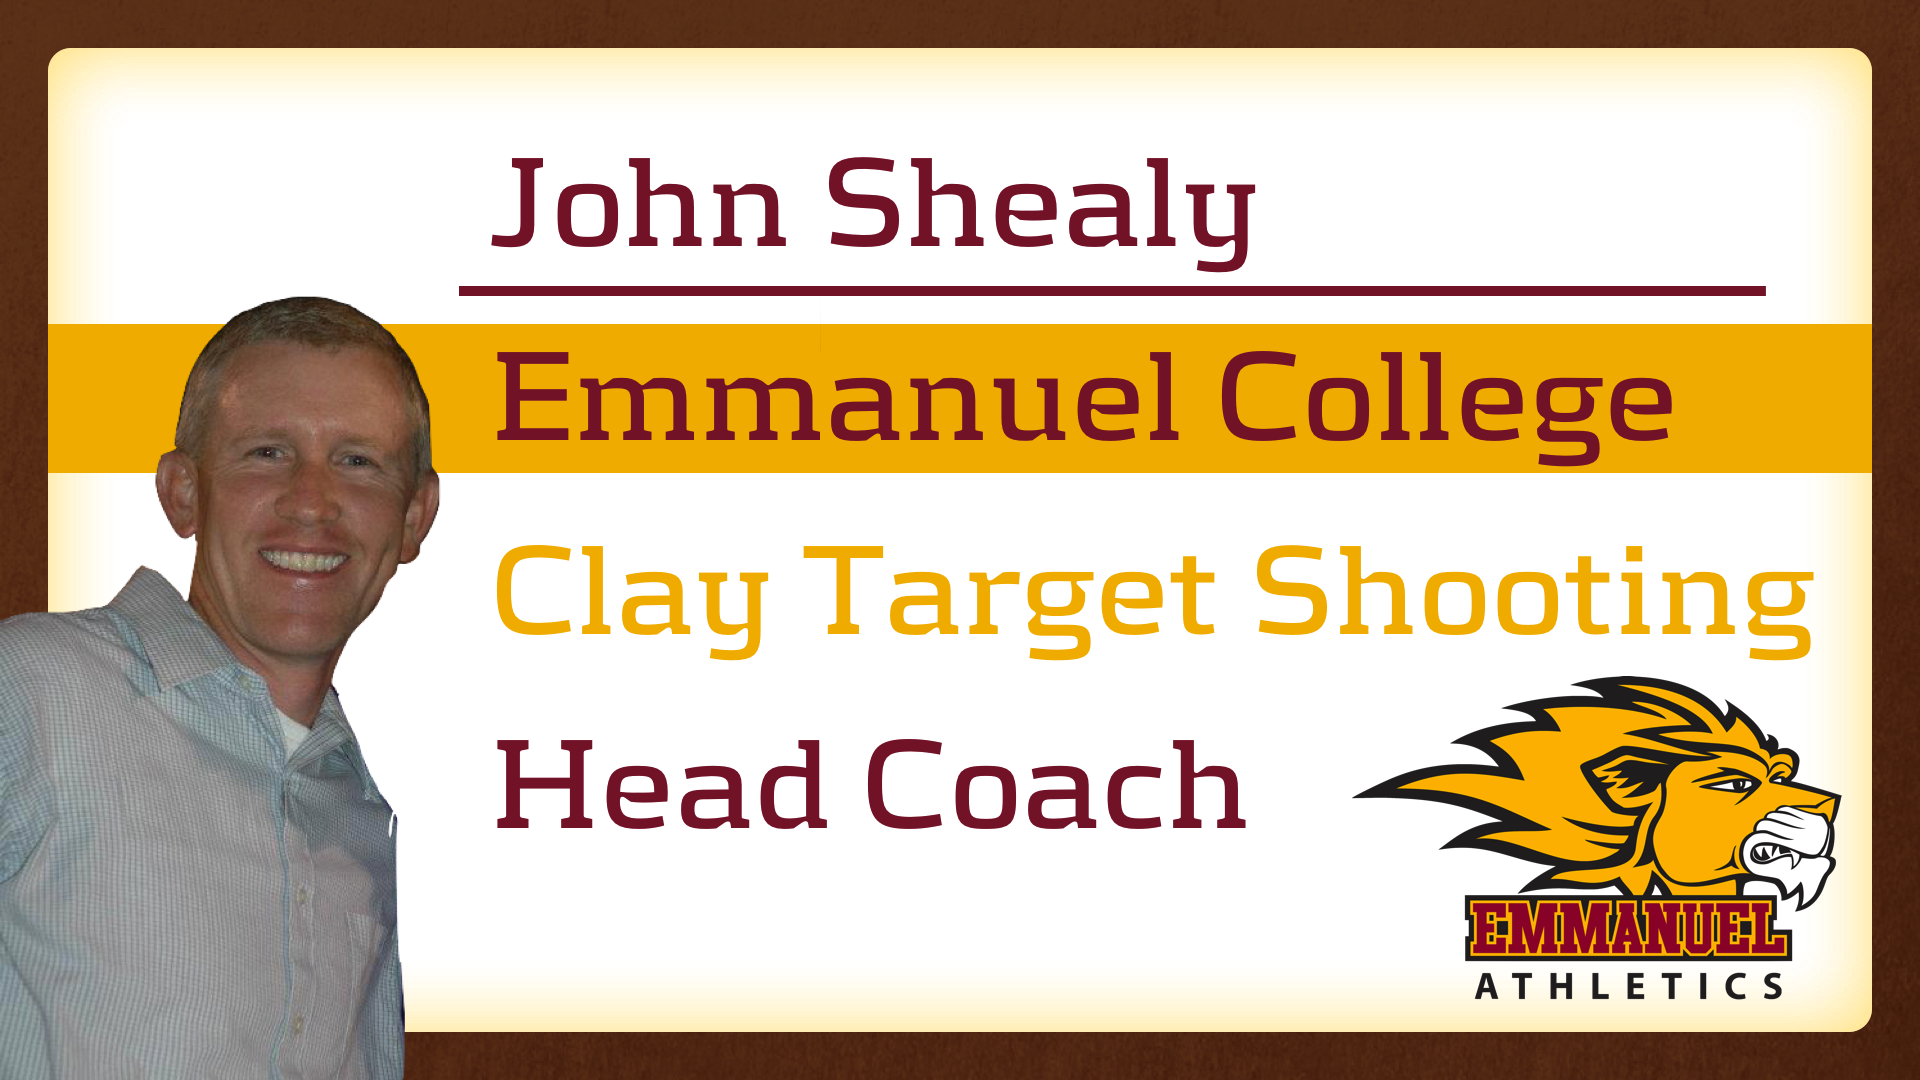 John Shealy to Lead Clay Target Shooting Program